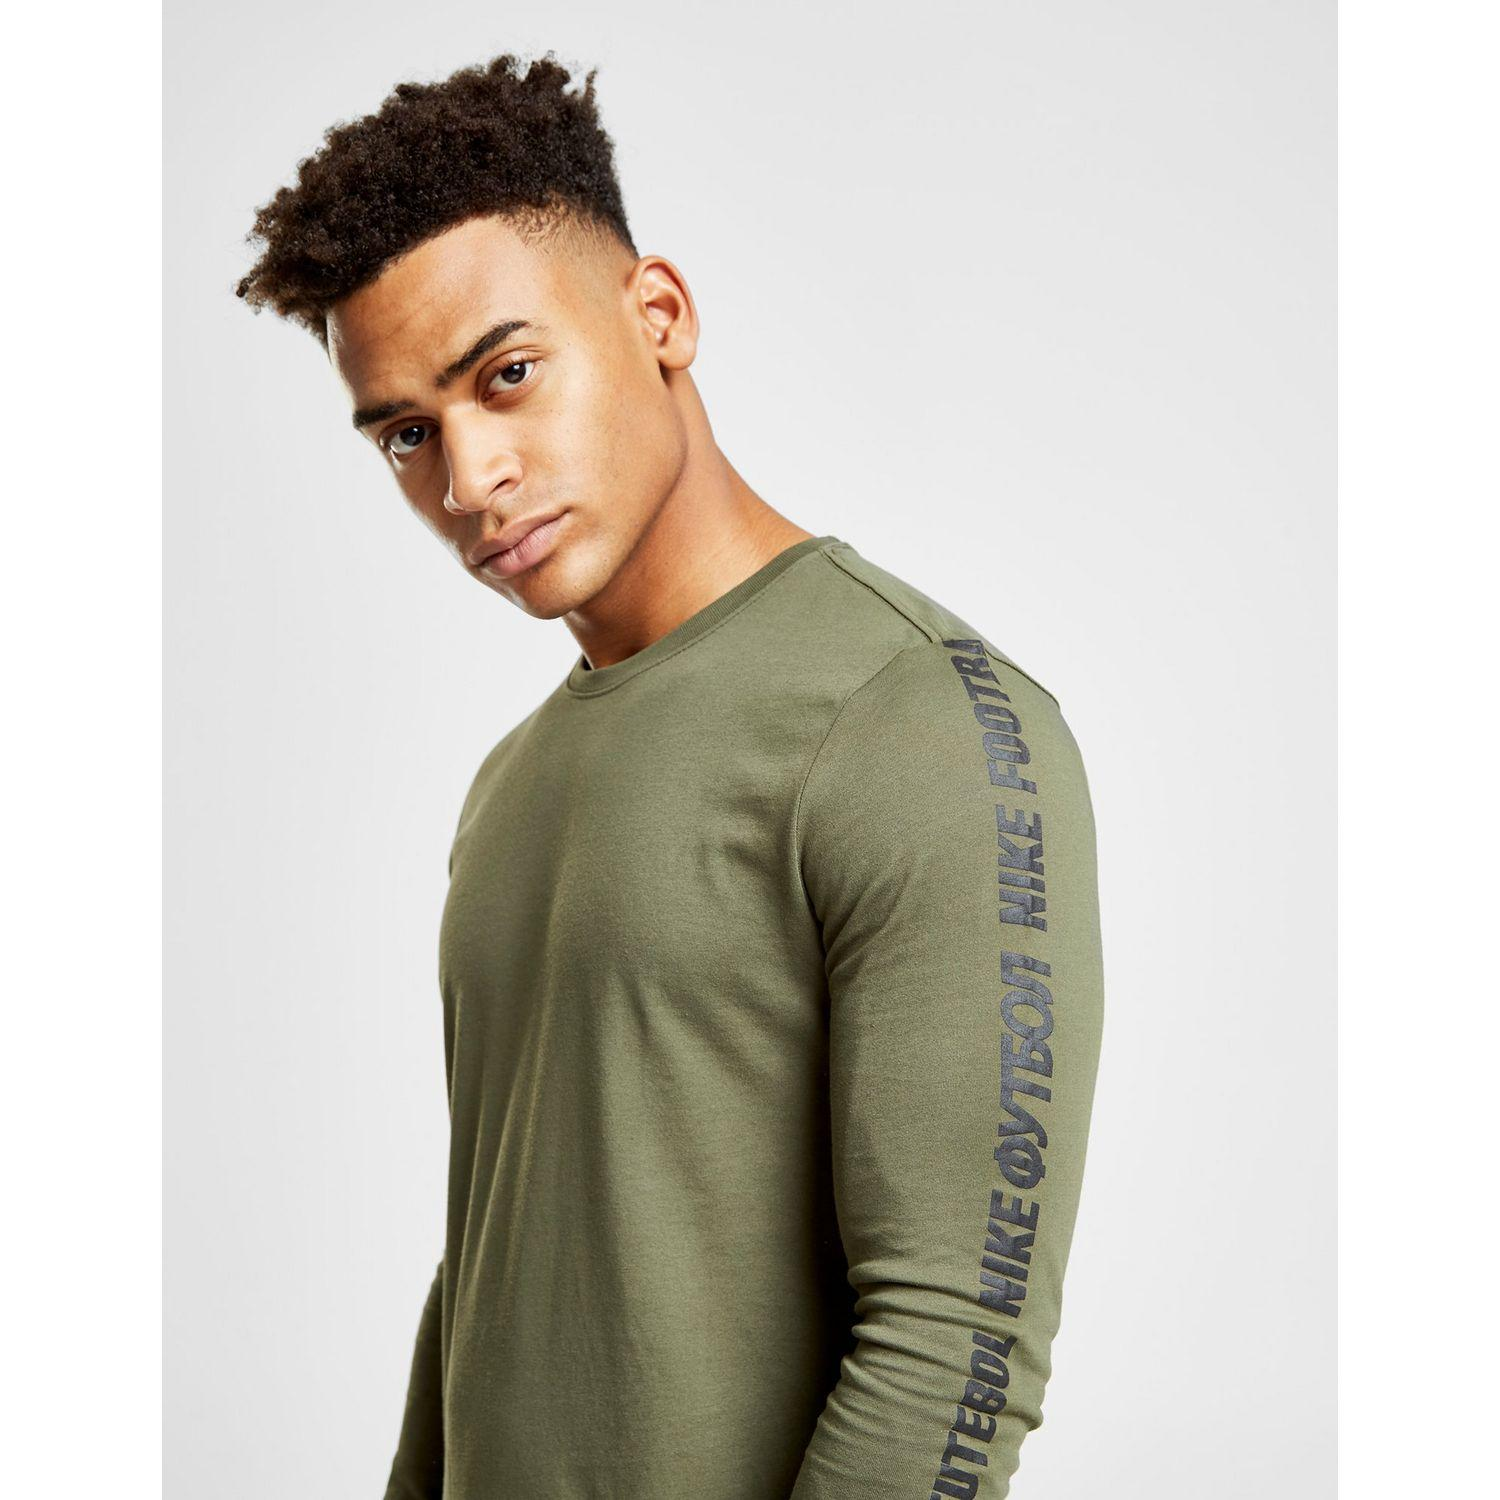 b8051674 Nike Fc Long Sleeve Tape T-shirt in Green for Men - Lyst